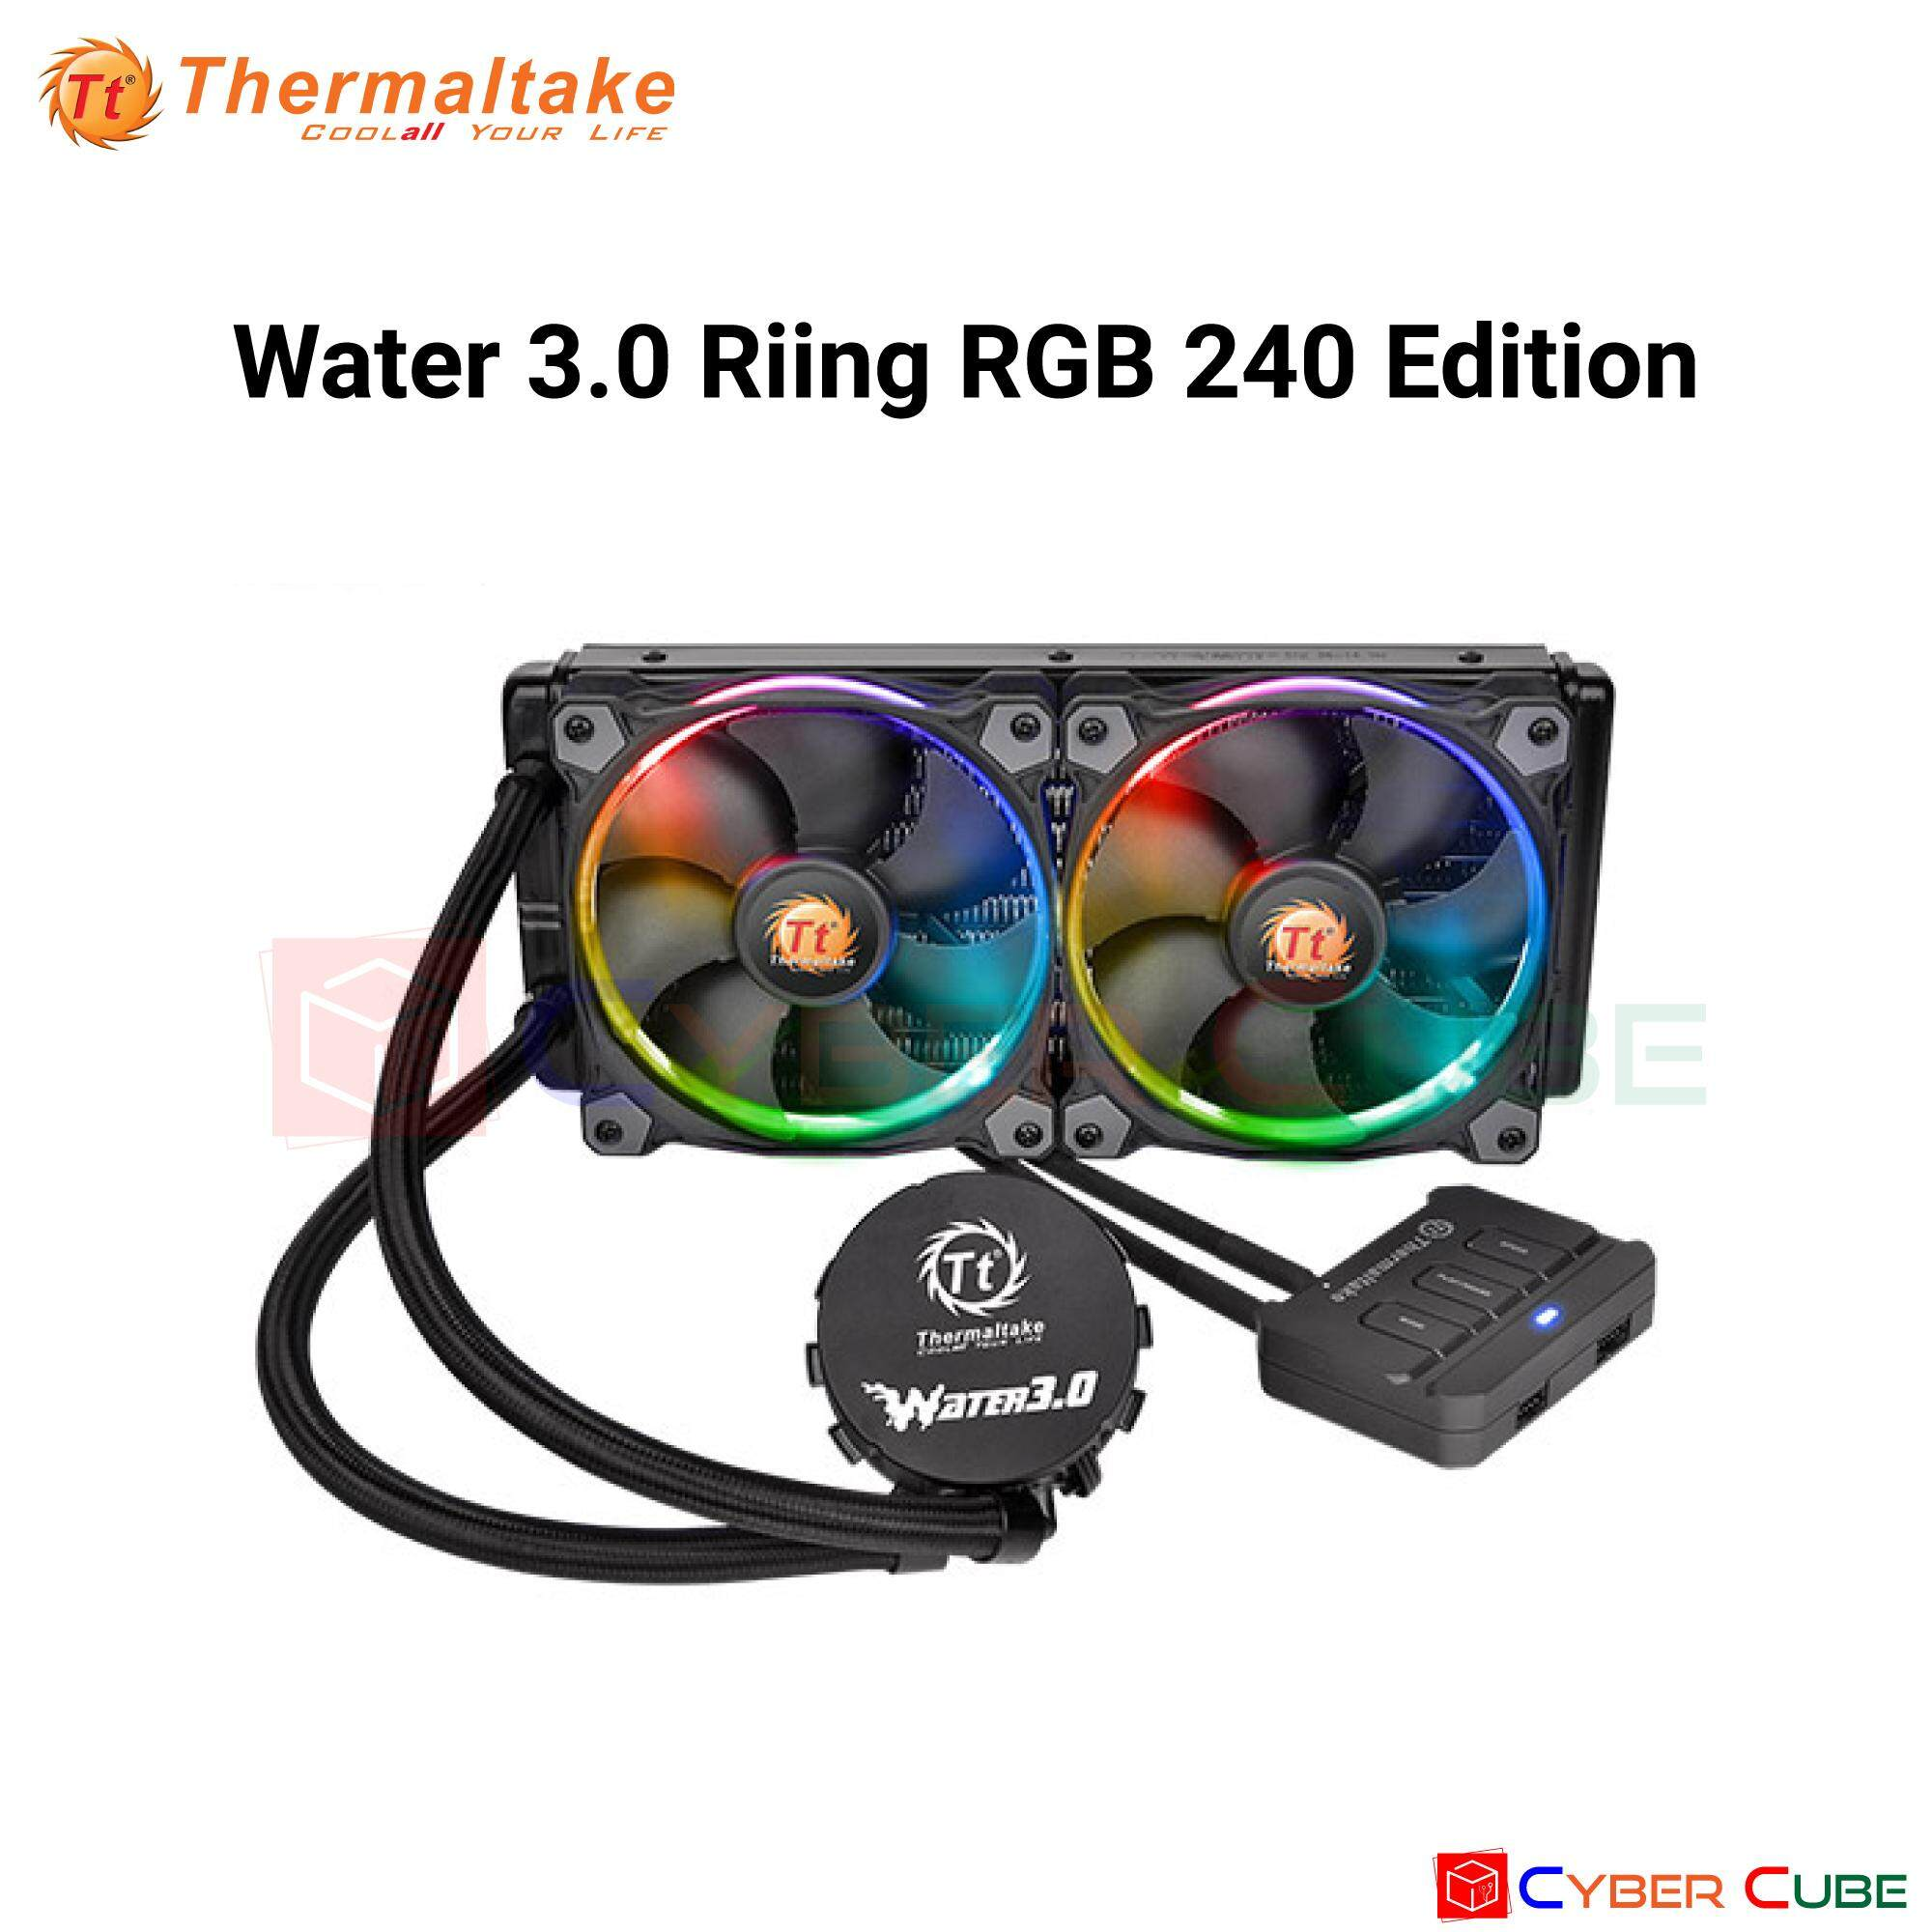 Thermaltake Water 3.0 Riing Rgb 240 (อุปกรณ์ประกอบชุดน้ำ) Cpu Liquid Cooler By Cybercube.